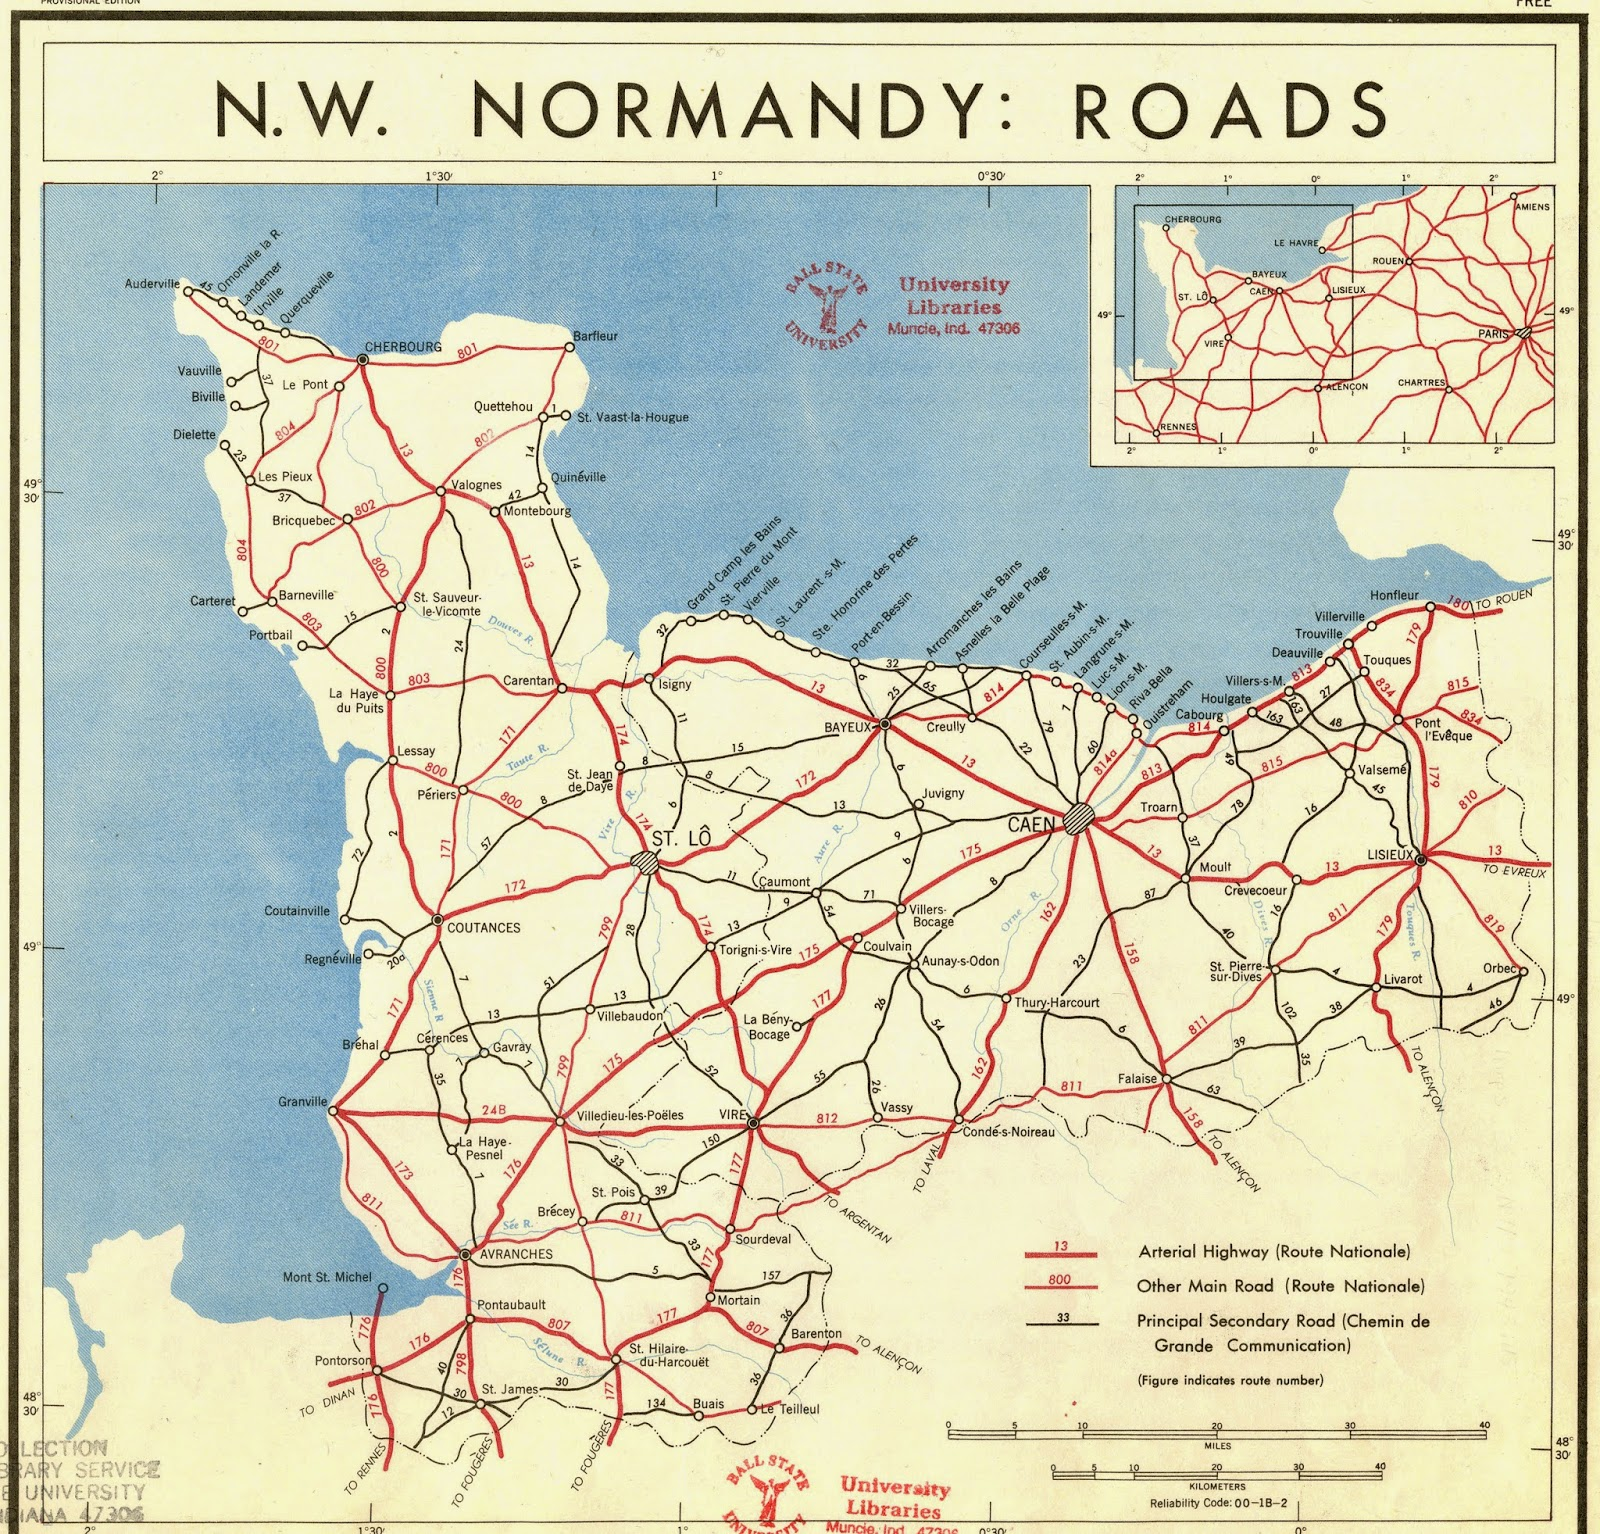 GIS Research and Map Collection: D-Day Maps Available from ... on democracy map, d-day landings map, nazi map, hitler map, d-day animated map, normandy map, france map, d day weather map, boat map, oklahoma d-day map, action map, dayz map, eisenhower map, d-day europe map, juno beach map, falaise gap map, d-day interactive map, d-day beach map, minecraft d-day map,